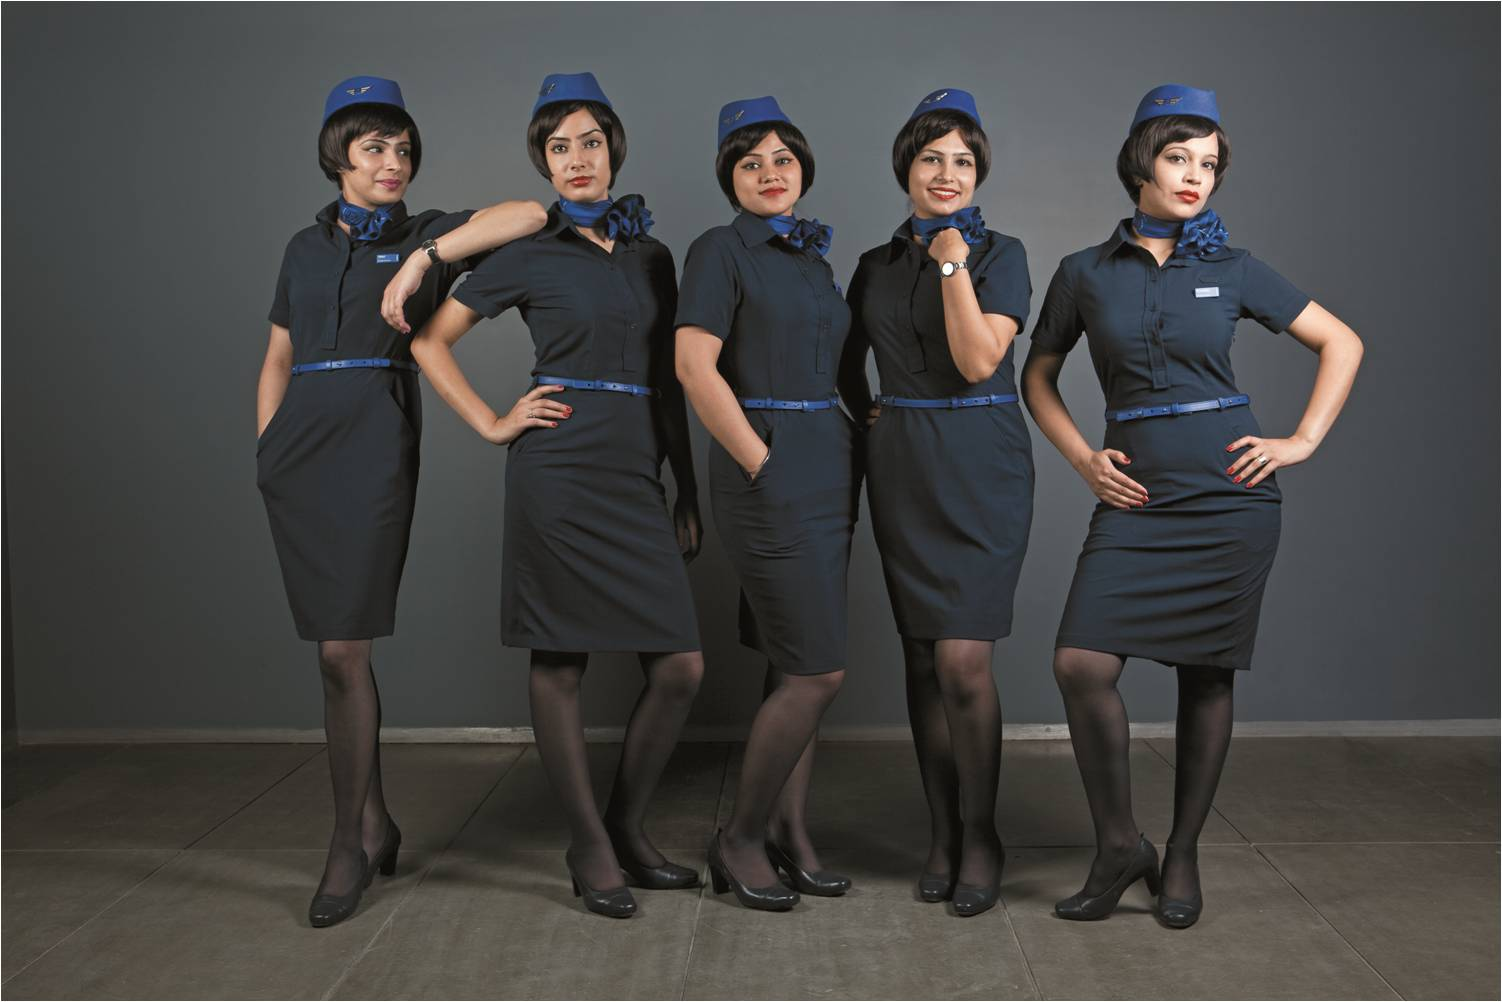 Cabin Crew Interview (ATR) - (December 4) APPLY SOON